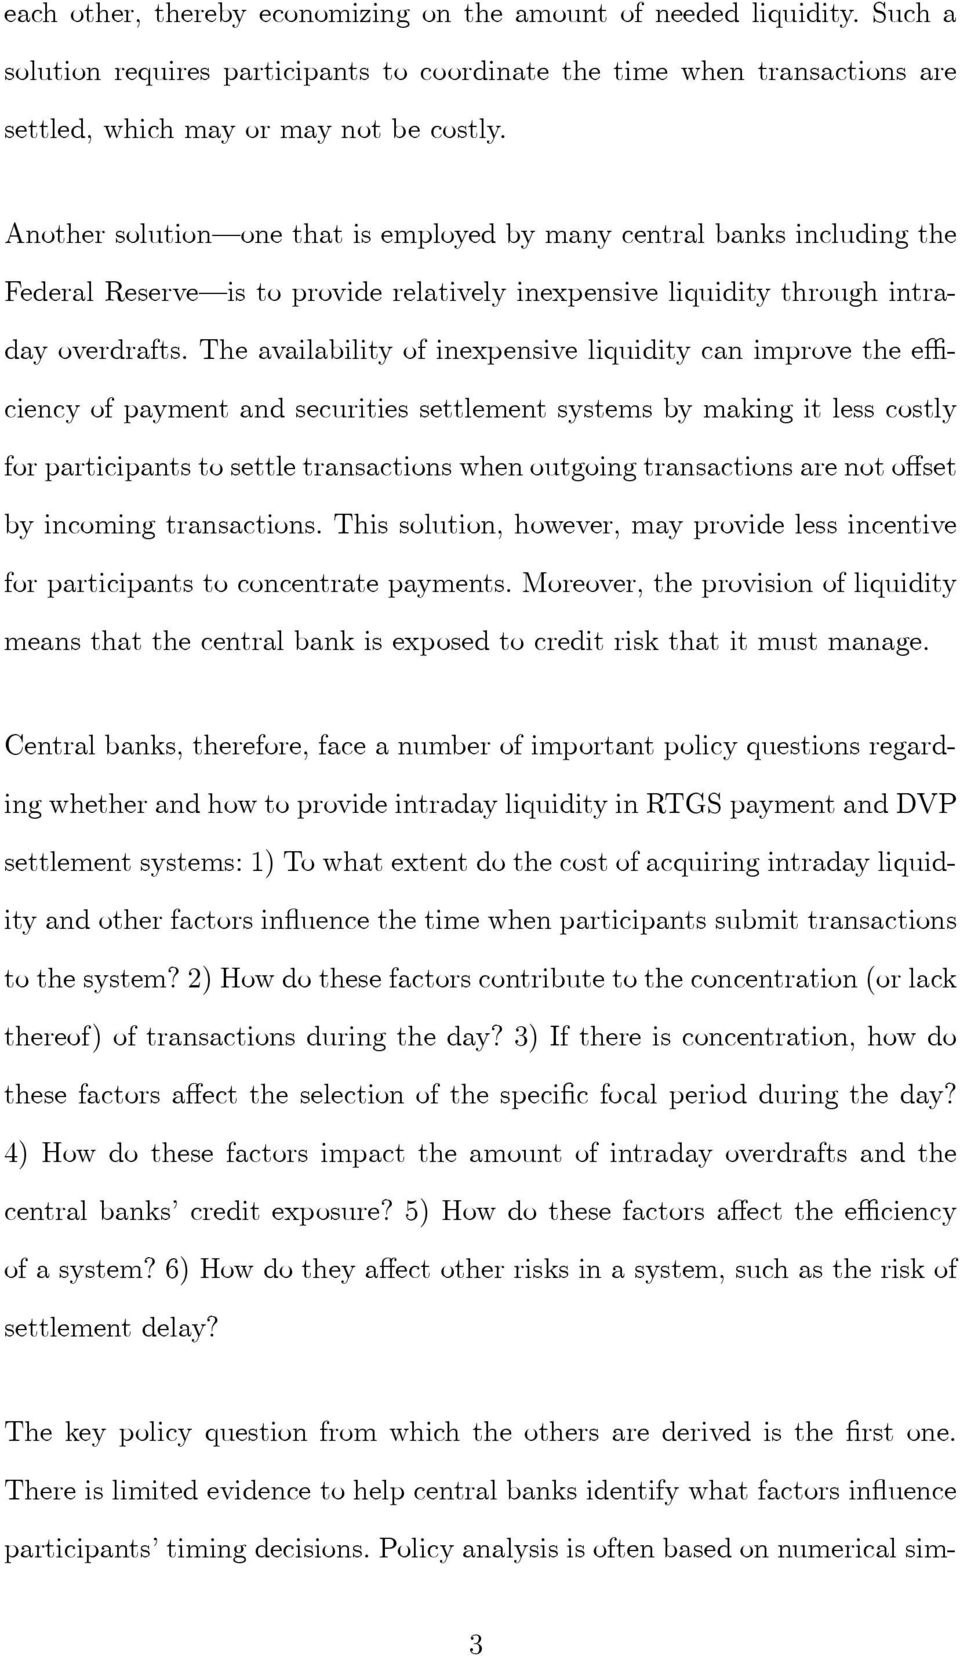 The availability of inexpensive liquidity can improve the eciency of payment and securities settlement systems by making it less costly for participants to settle transactions when outgoing